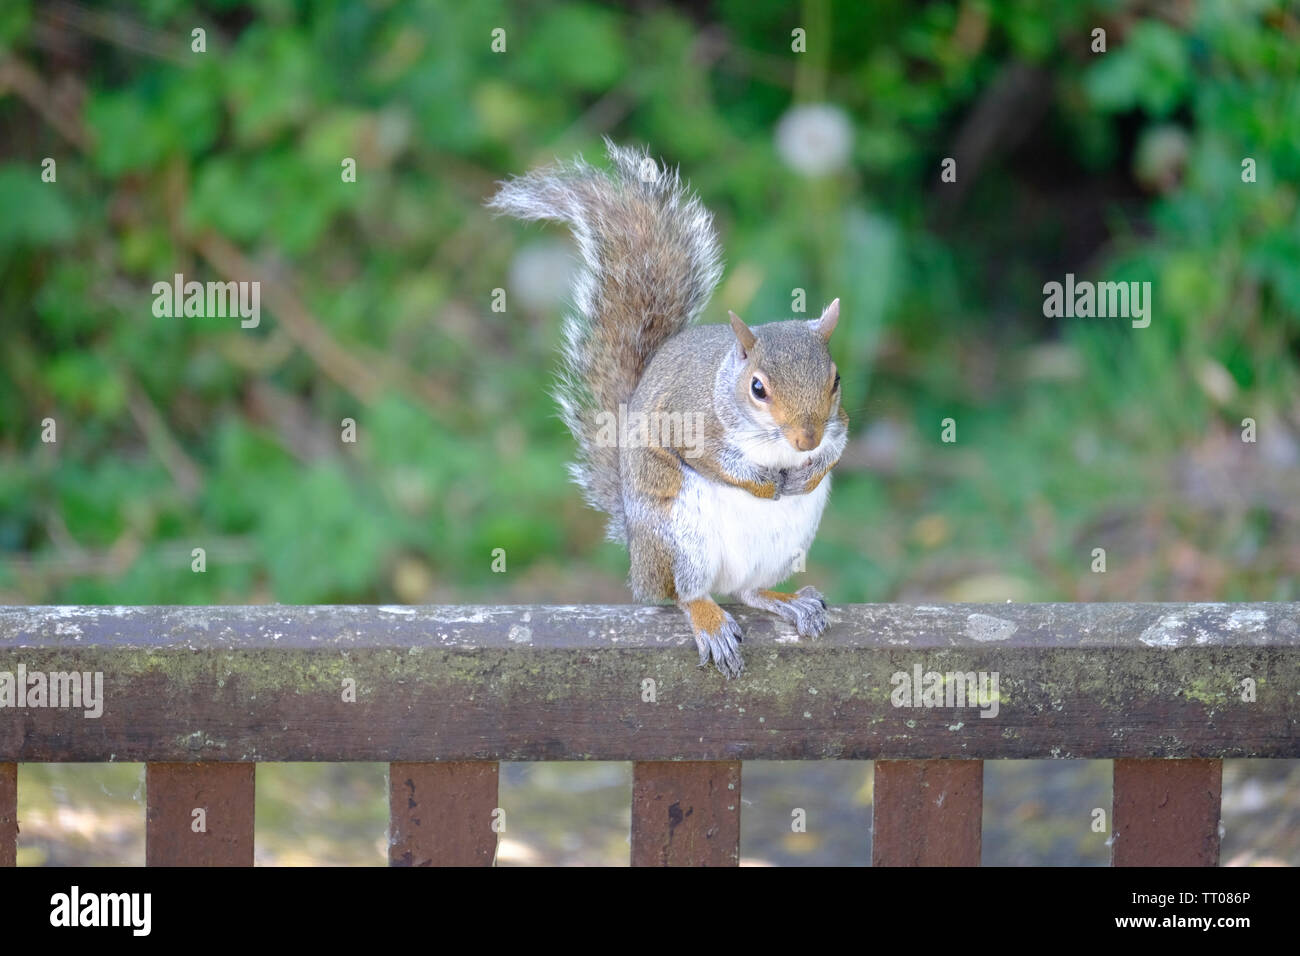 Cute and somewhat overweight little Eastern Grey Squirrel (Sciurus carolinensis) balancing on the back of an old wooden garden seat - Stock Image